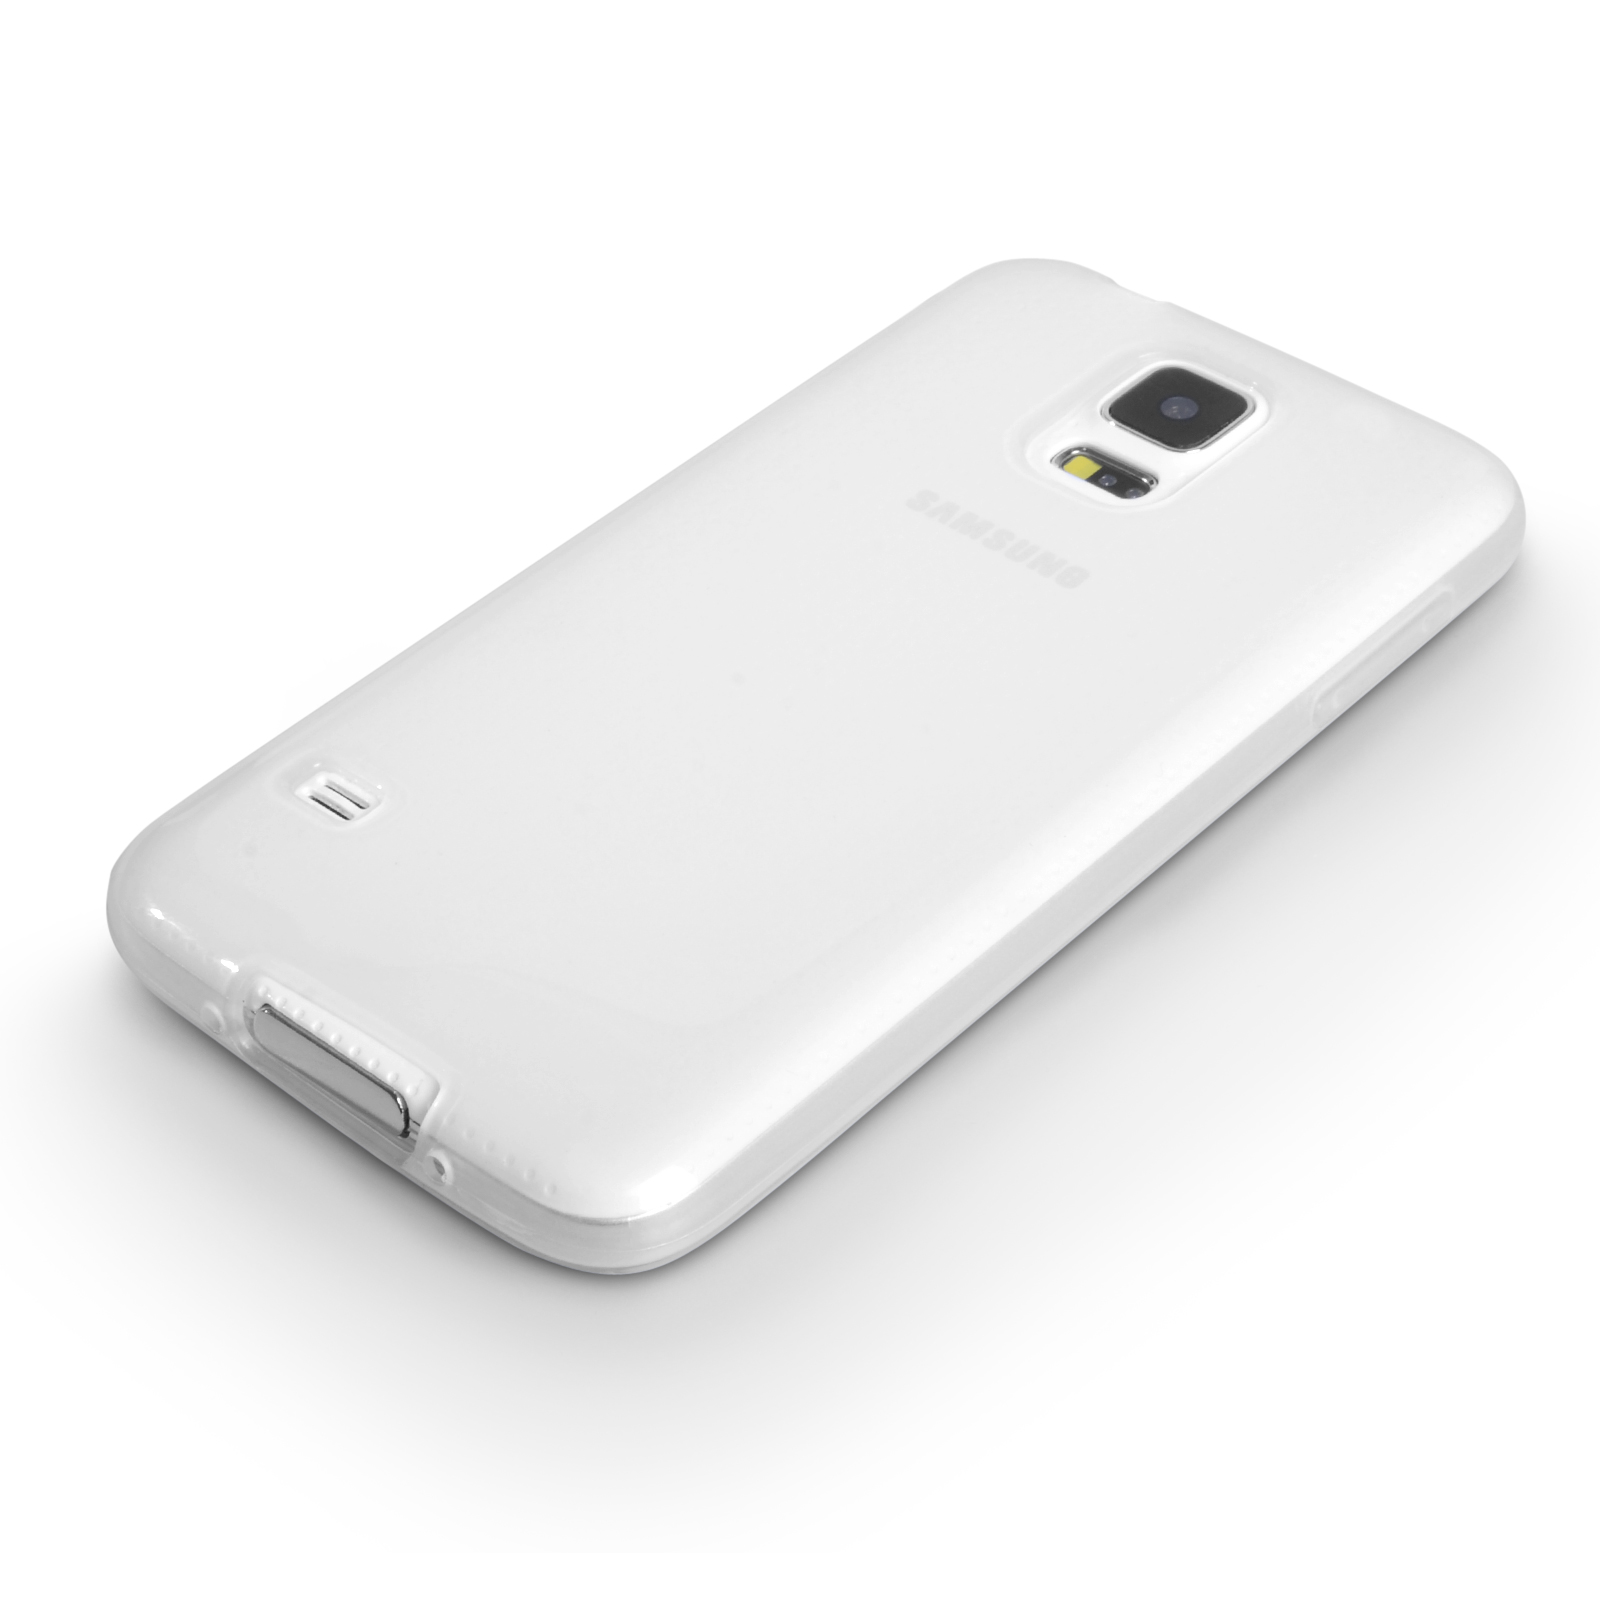 YouSave Accessories Samsung Galaxy S5 Silicone Gel Case - Clear